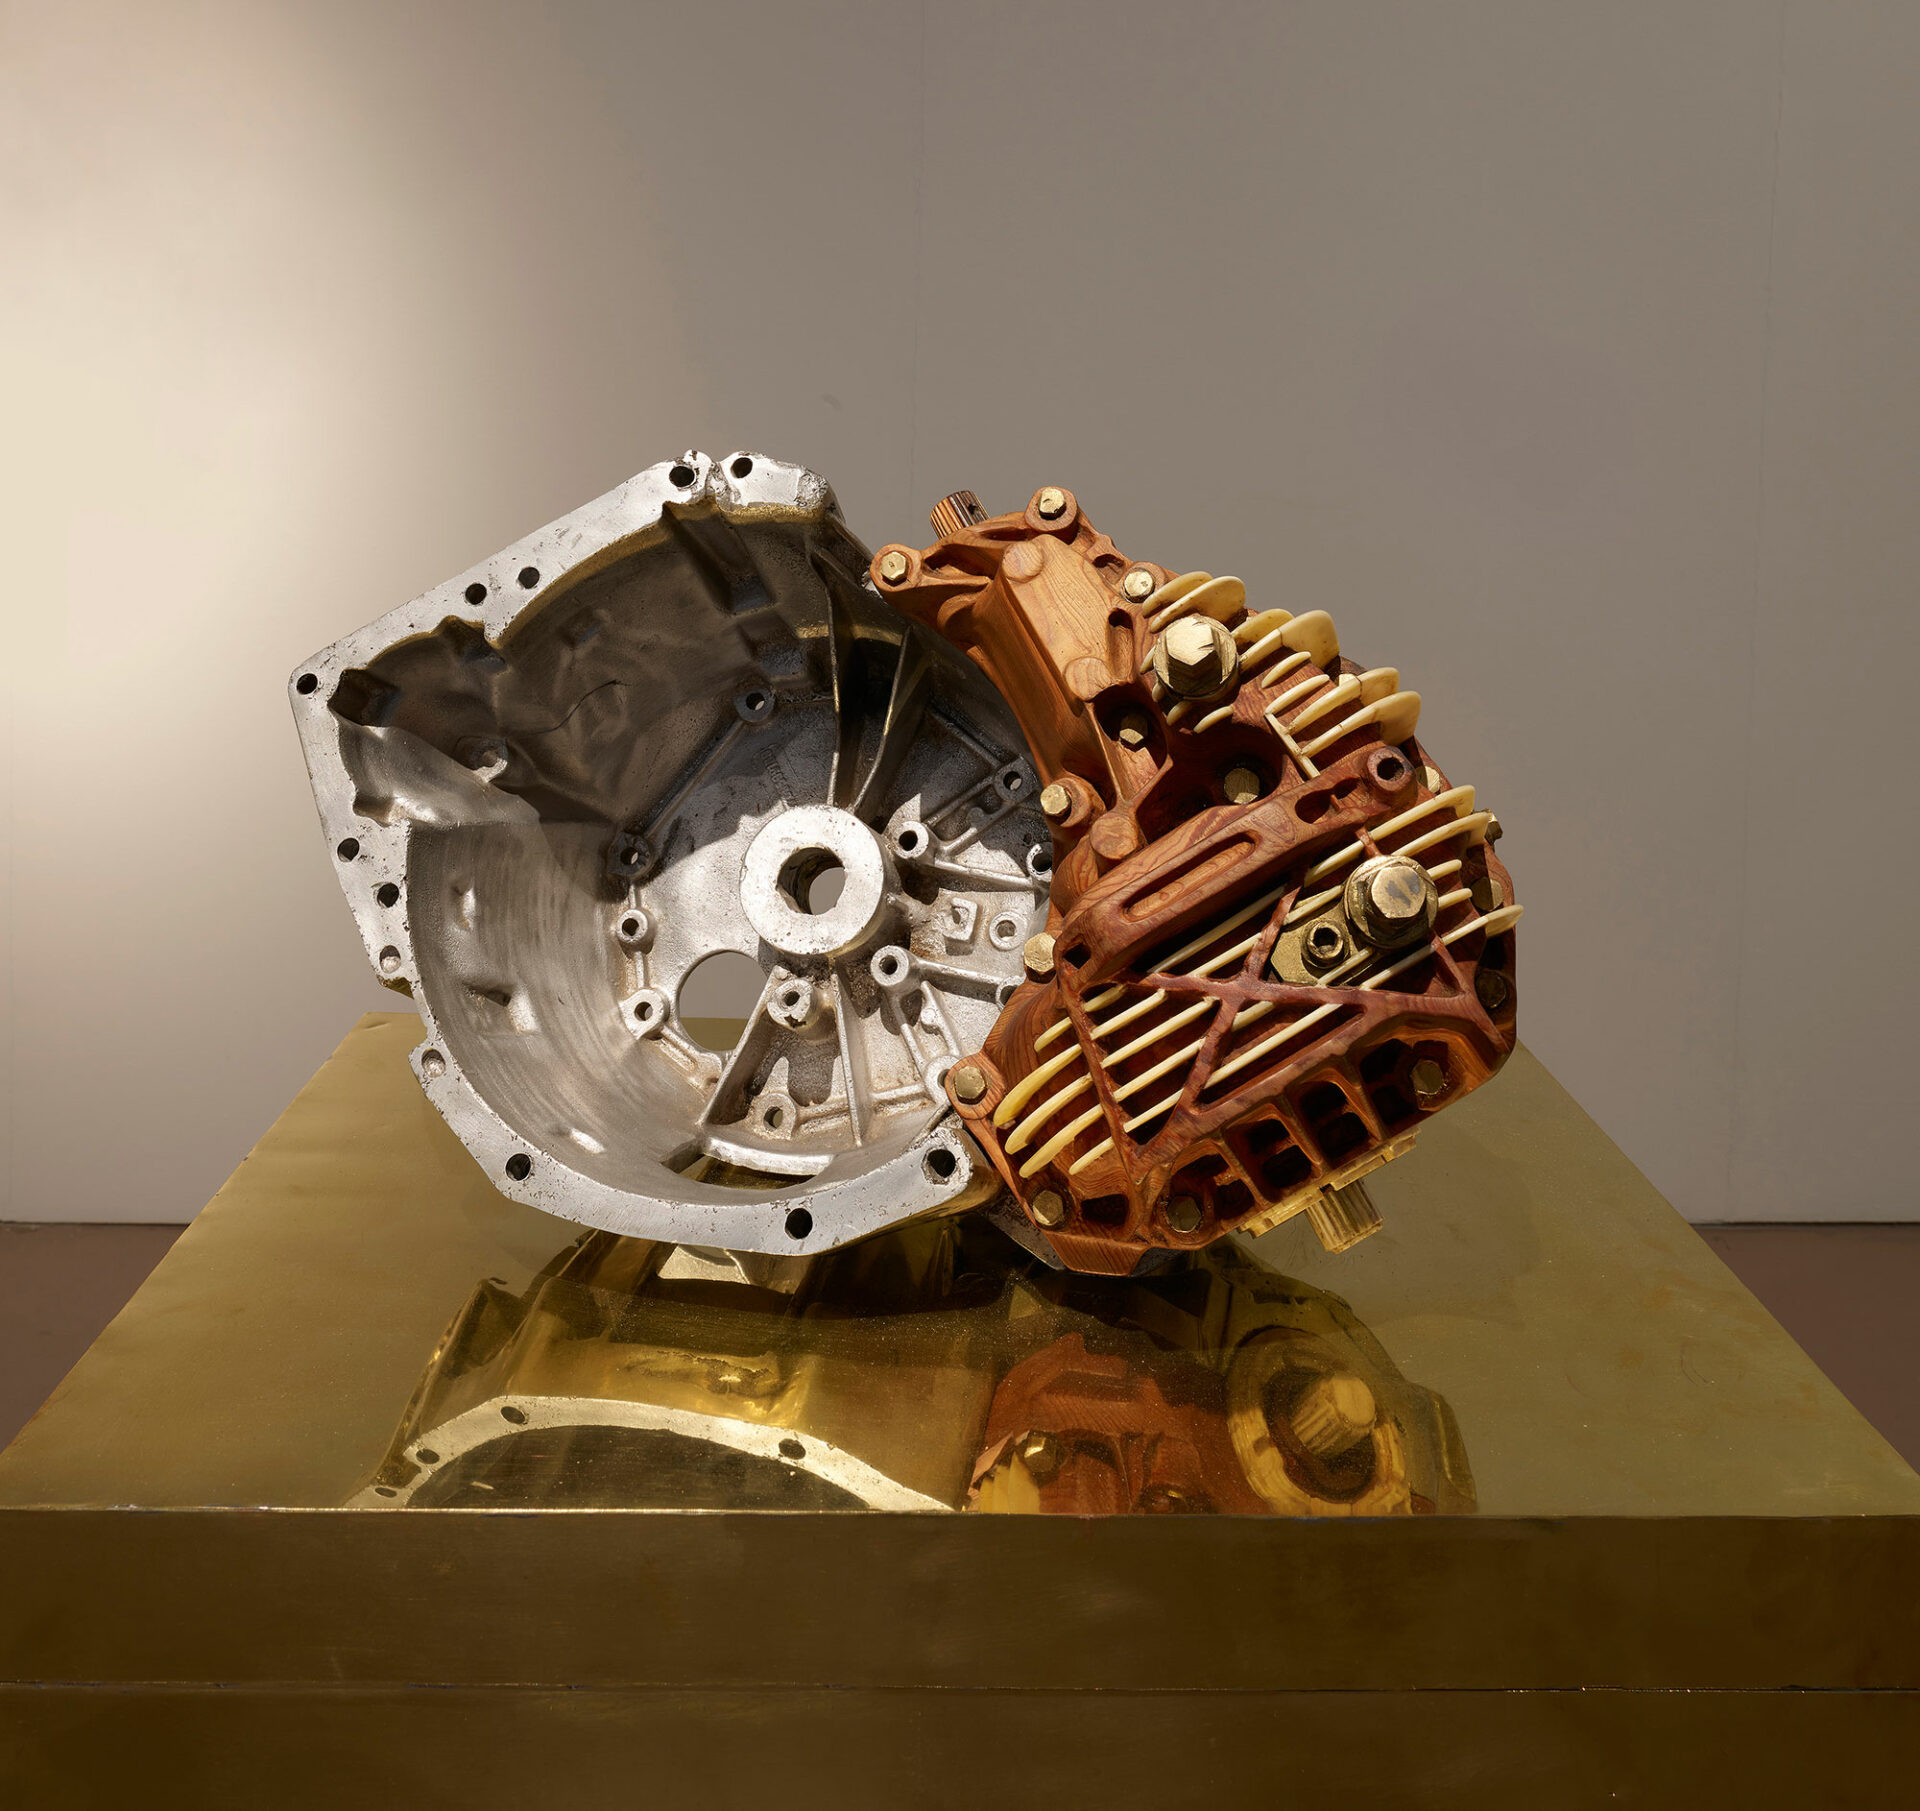 Untitled (Renault Trafic gearbox)_Eric van Hove_2015_on inner copper box_low resolution